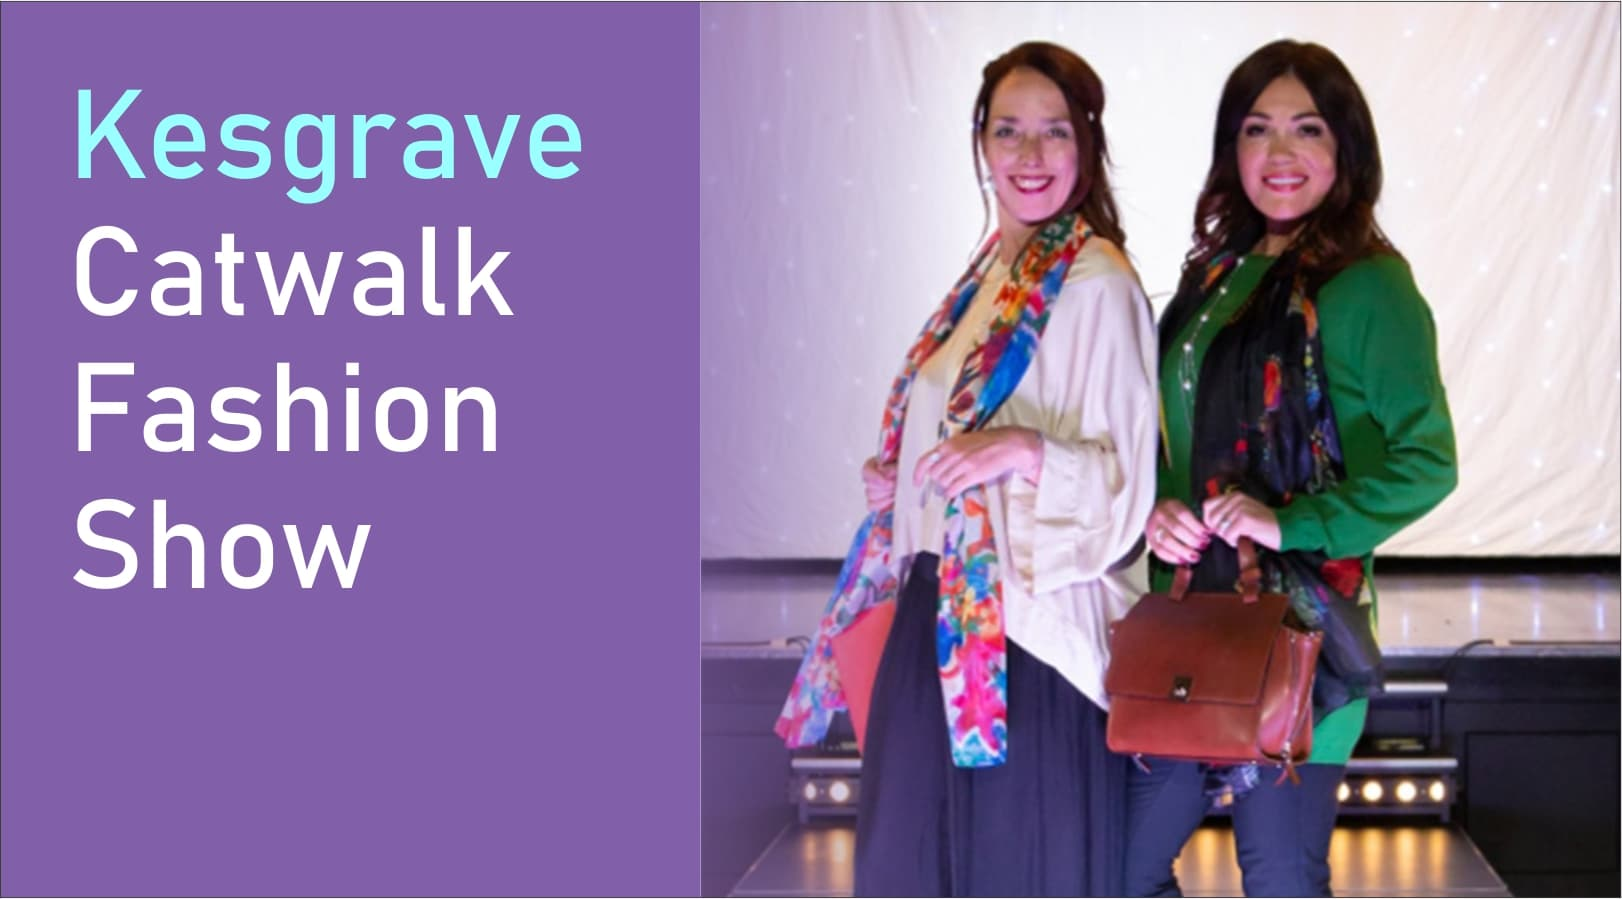 Kesgrave Catwalk Fashion Show feature image